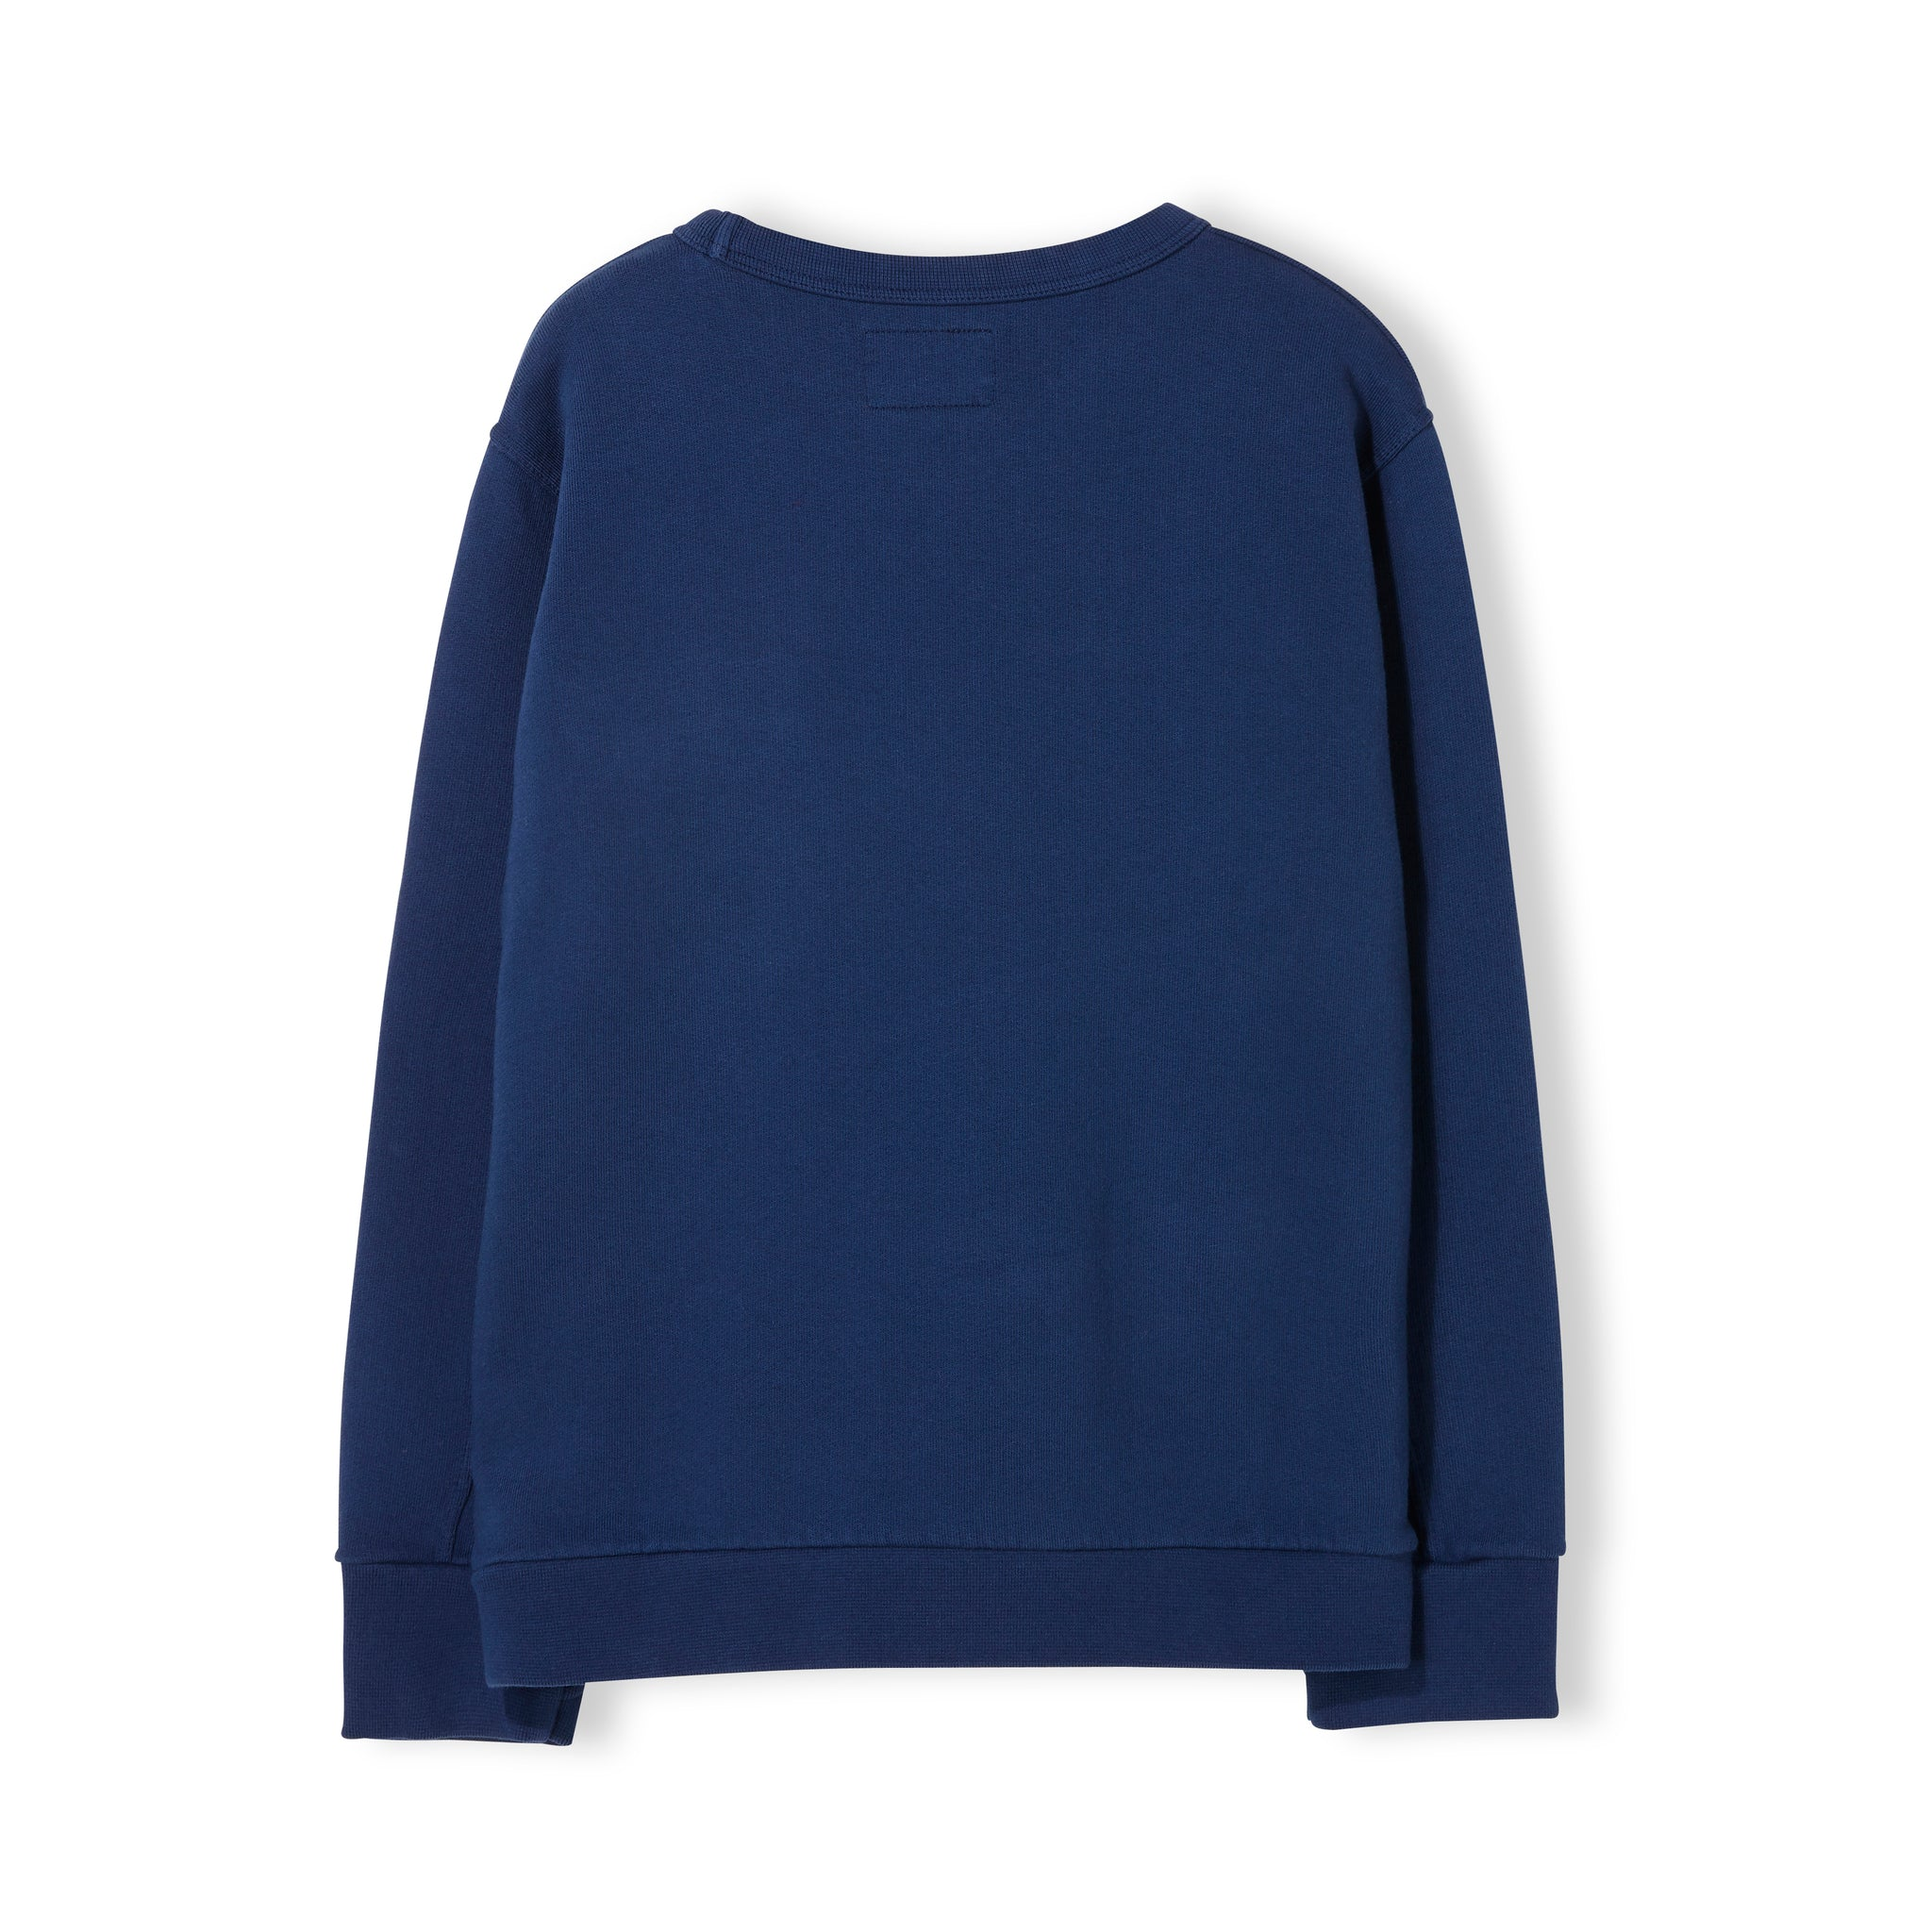 BRIAN Indi Blue - Boy Knitted Crew Neck Sweatshirt 2